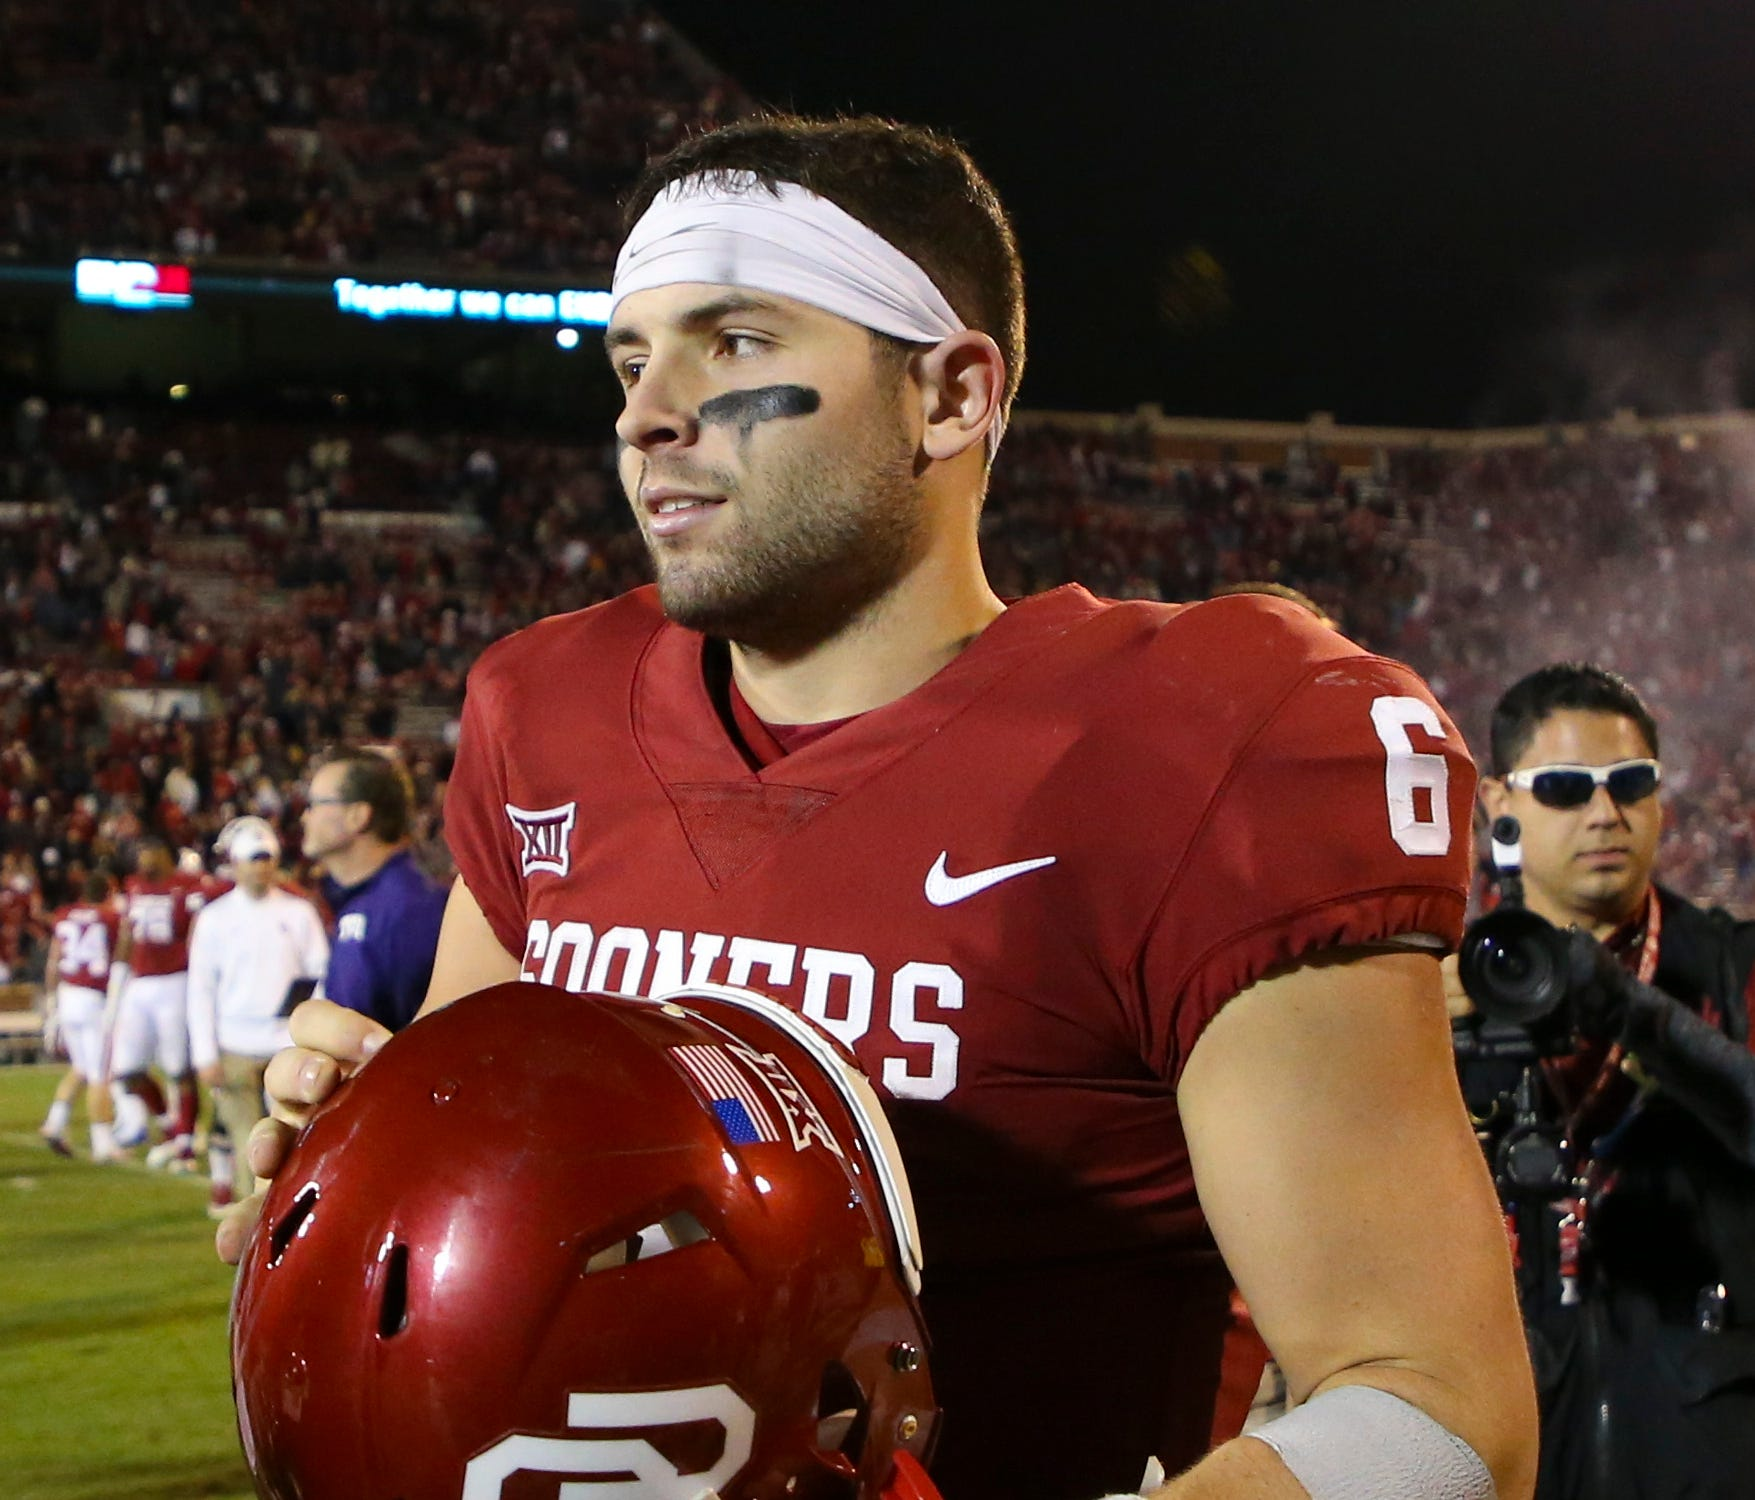 Oklahoma Sooners quarterback Baker Mayfield (6) after the game against the TCU Horned Frogs at Gaylord Family - Oklahoma Memorial Stadium.